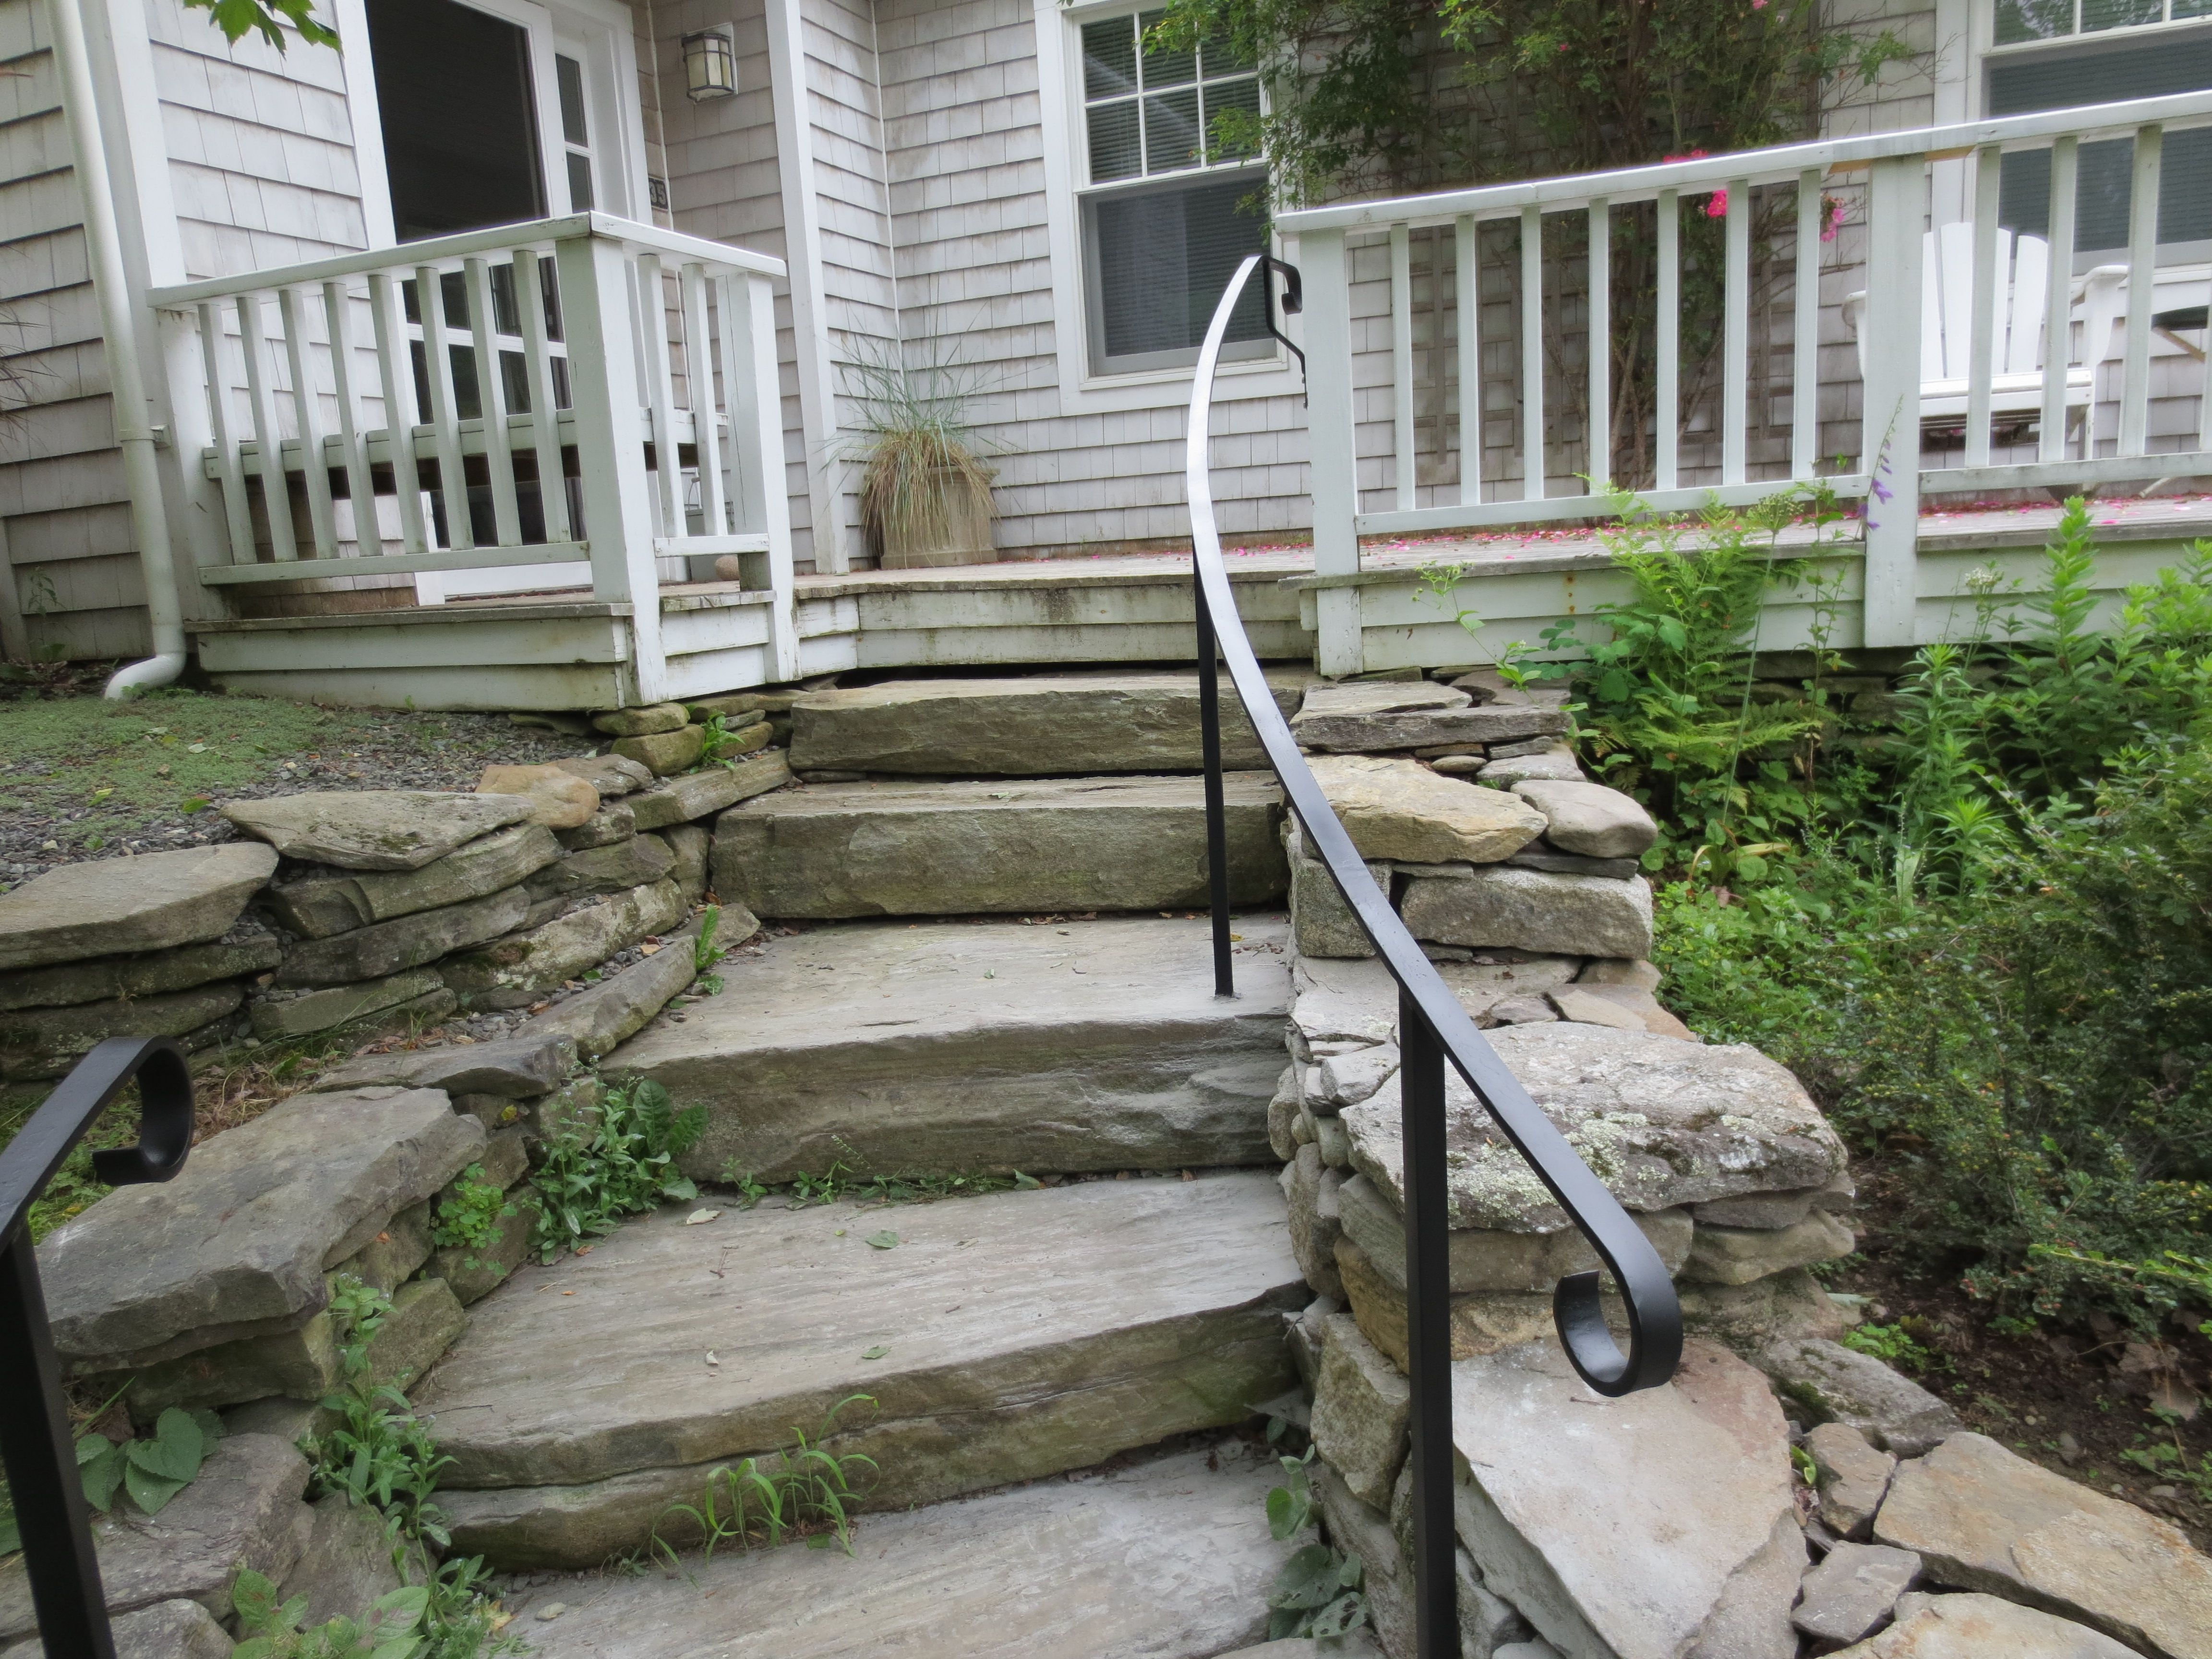 Pin By Life Is Beautiful On It S All Down Hill Outdoor Stair   Railings For Brick Steps   Steel Handrail   Front Door   Staircase   Railing Ideas   Handrails